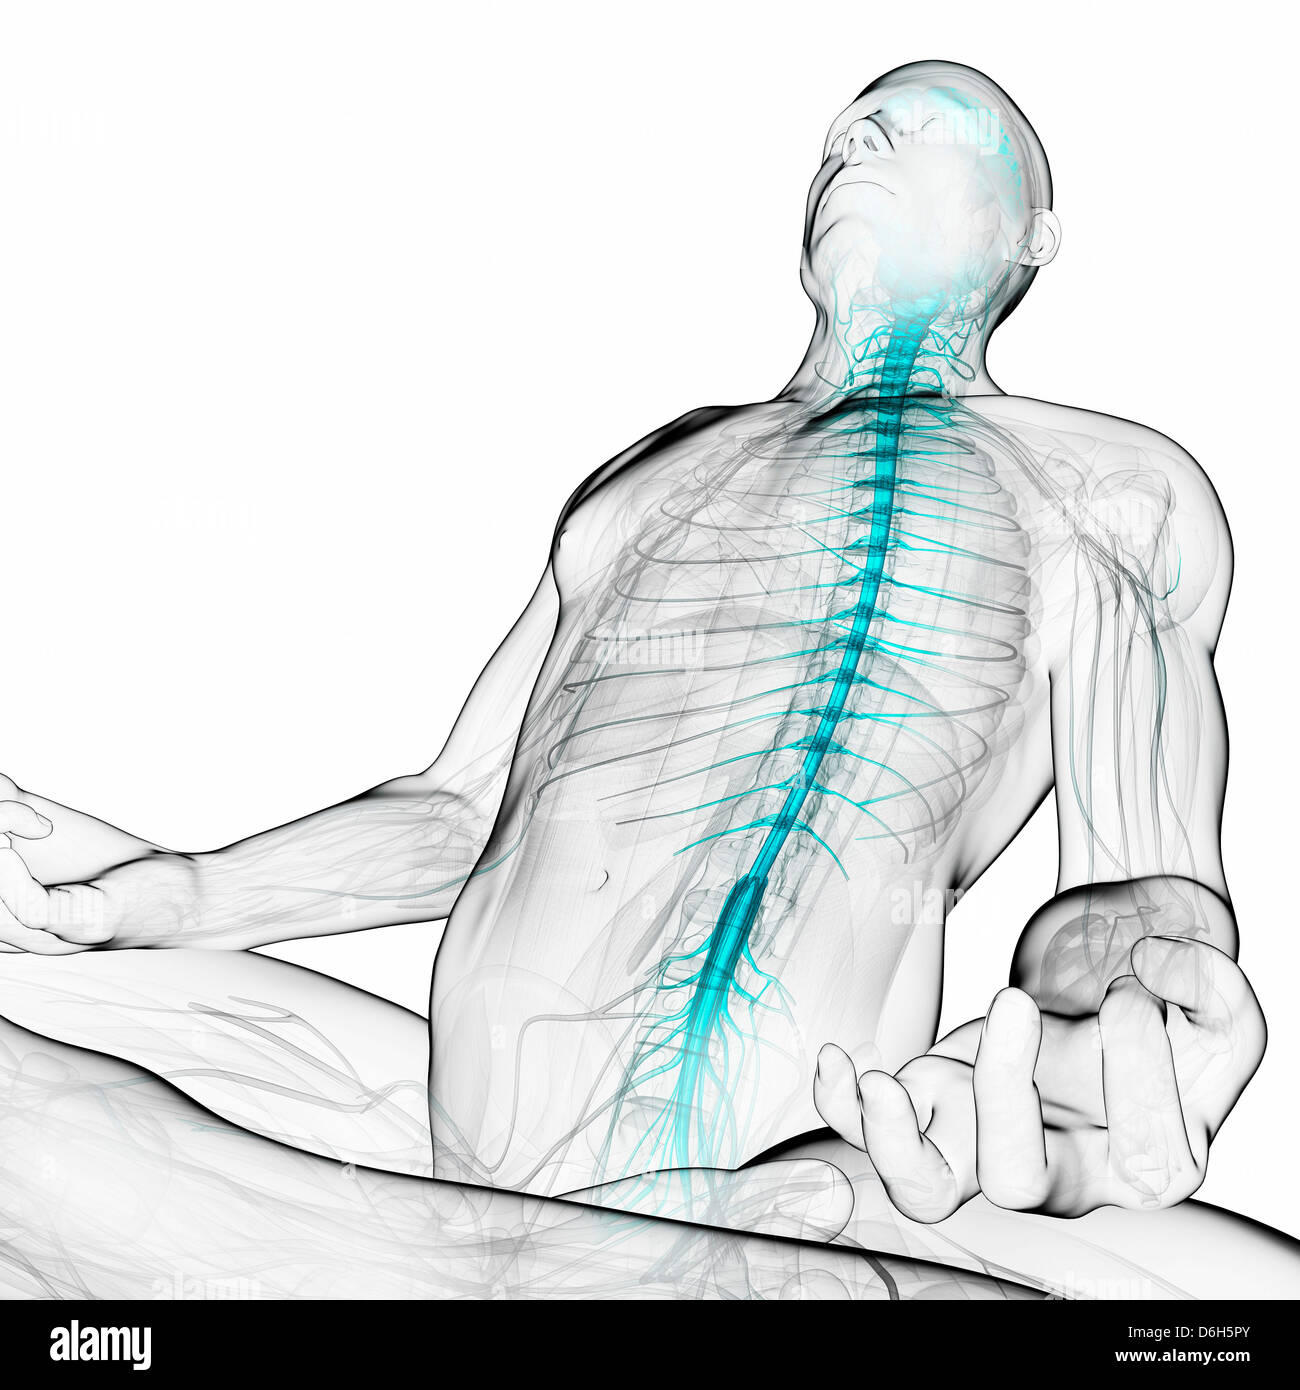 Human Spinal Cord Stock Photos Human Spinal Cord Stock Images Alamy